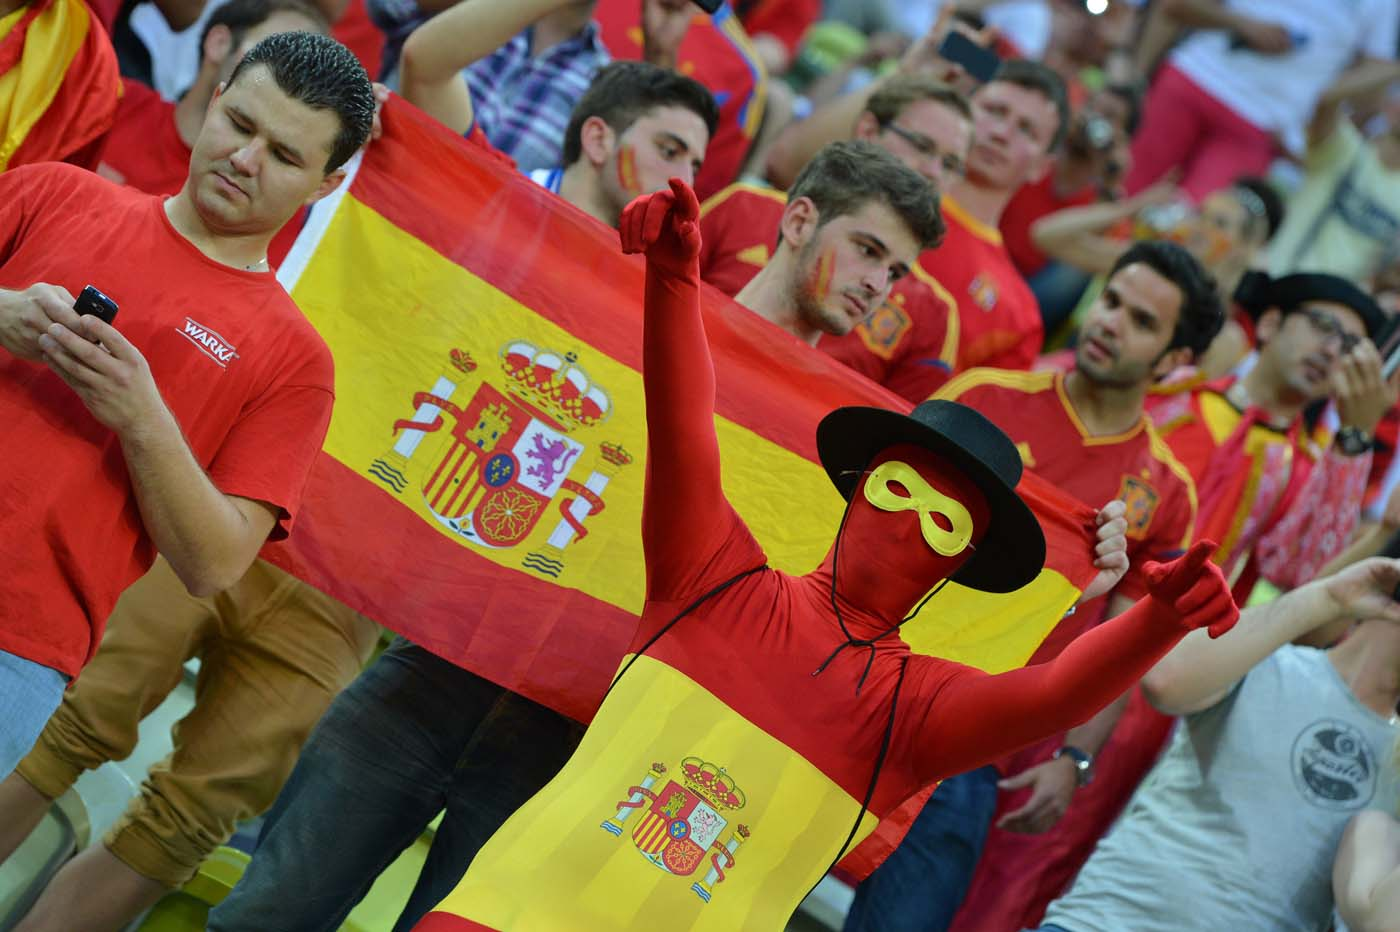 Fans of Spain's national football team react ahead of the Euro 2012 football championships match Croatia vs Spain on June 18, 2012 at the Gdansk Arena. (Gabriel Bouys/AFP/Getty Images)